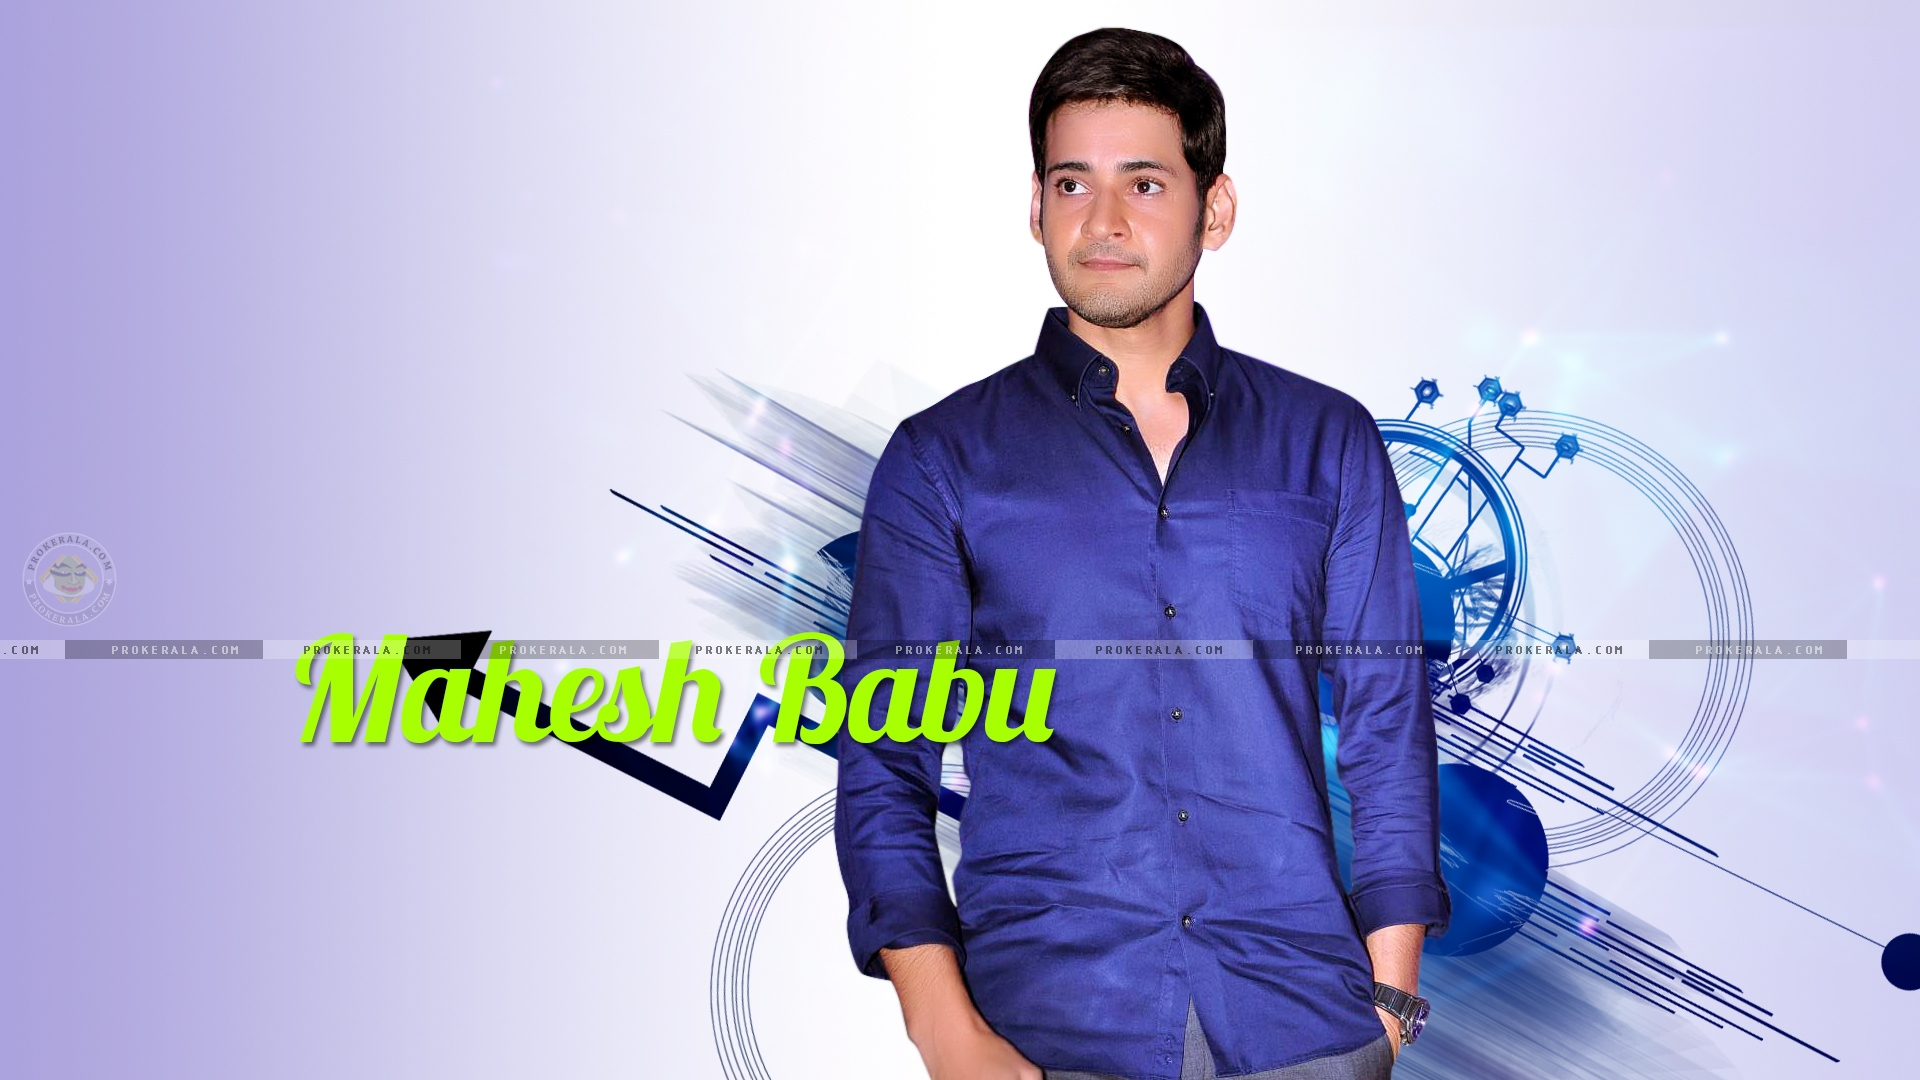 mahesh babu wallpapers images photos pictures backgrounds